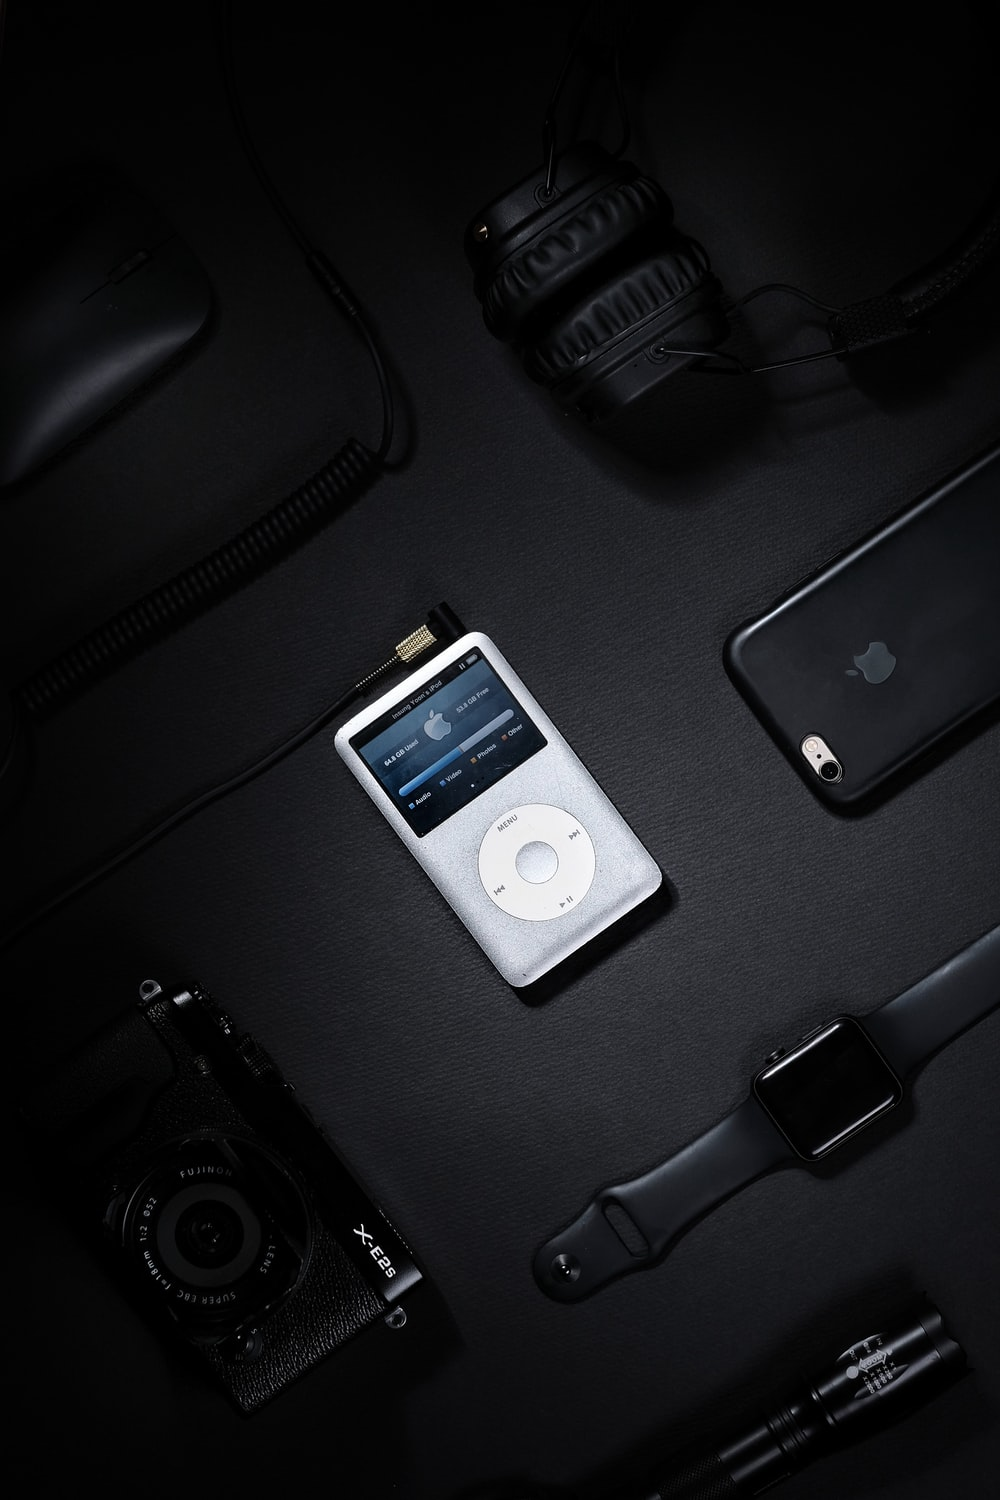 turned-on white iPod Classic